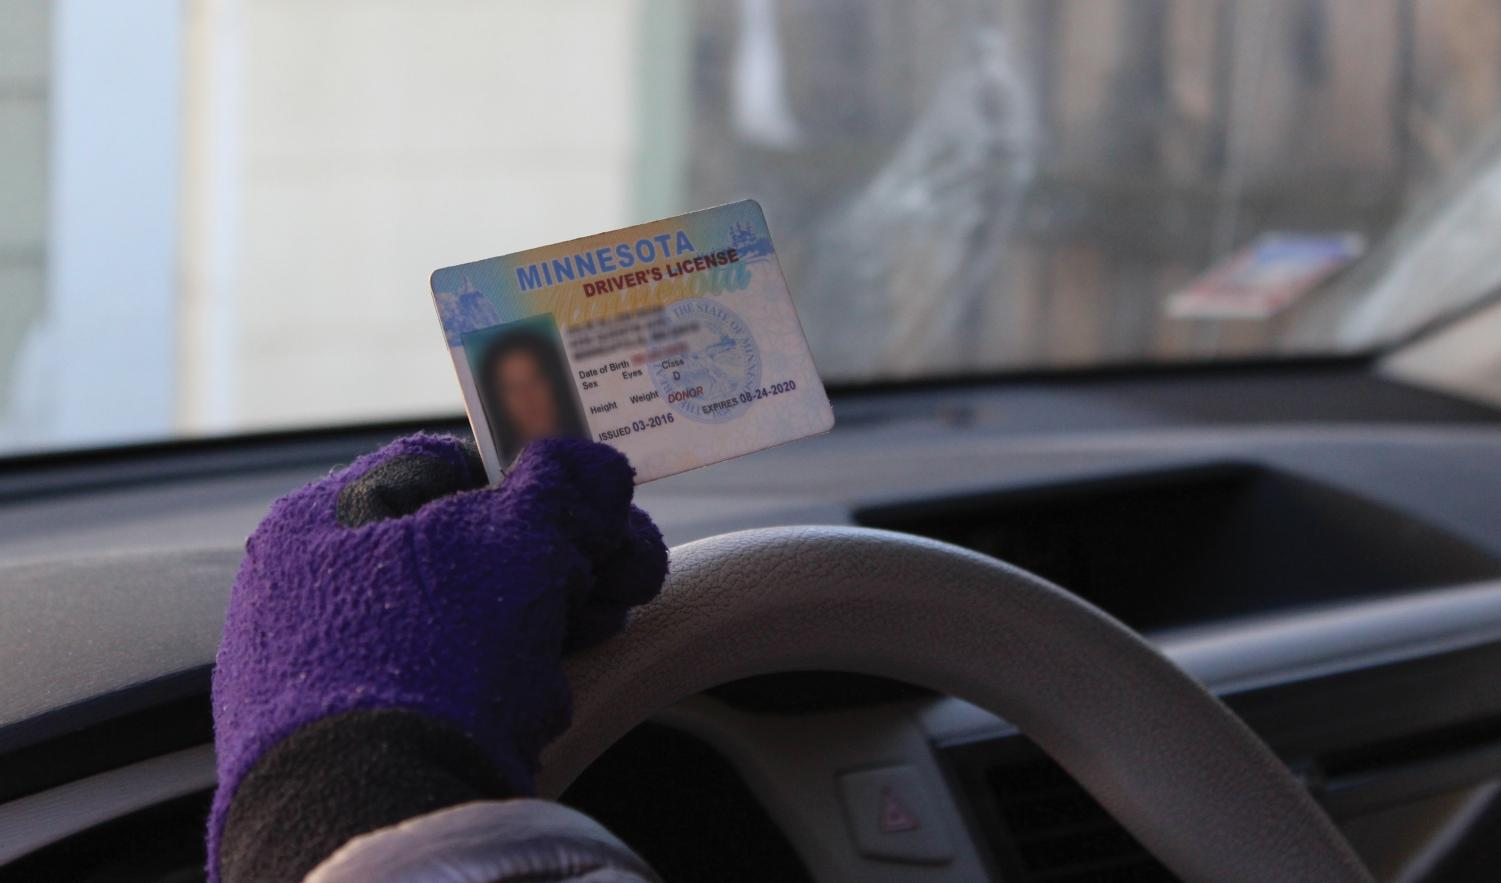 The Minnesota enhanced driver's licence serves as form of real ID, a Federal state ID security minimum effective October 10, 2018.